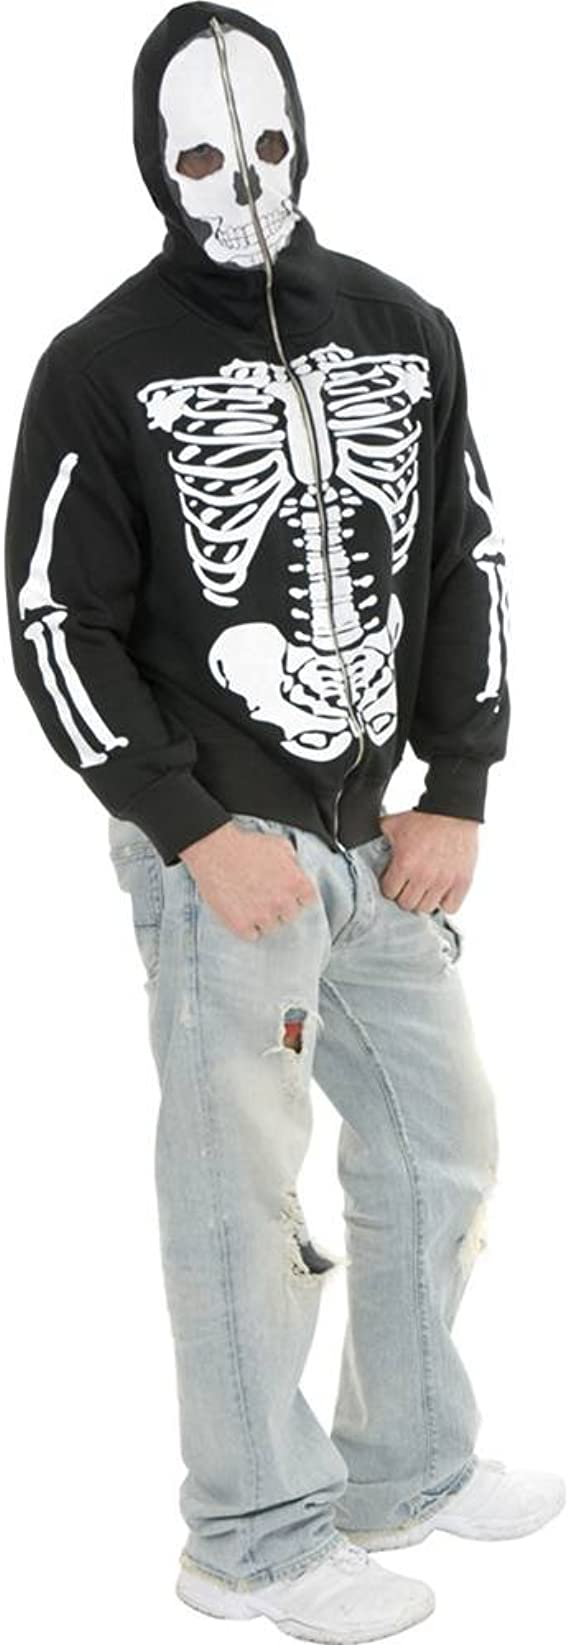 Mens Skeleton Hoodie Skeleton Sweatshirts